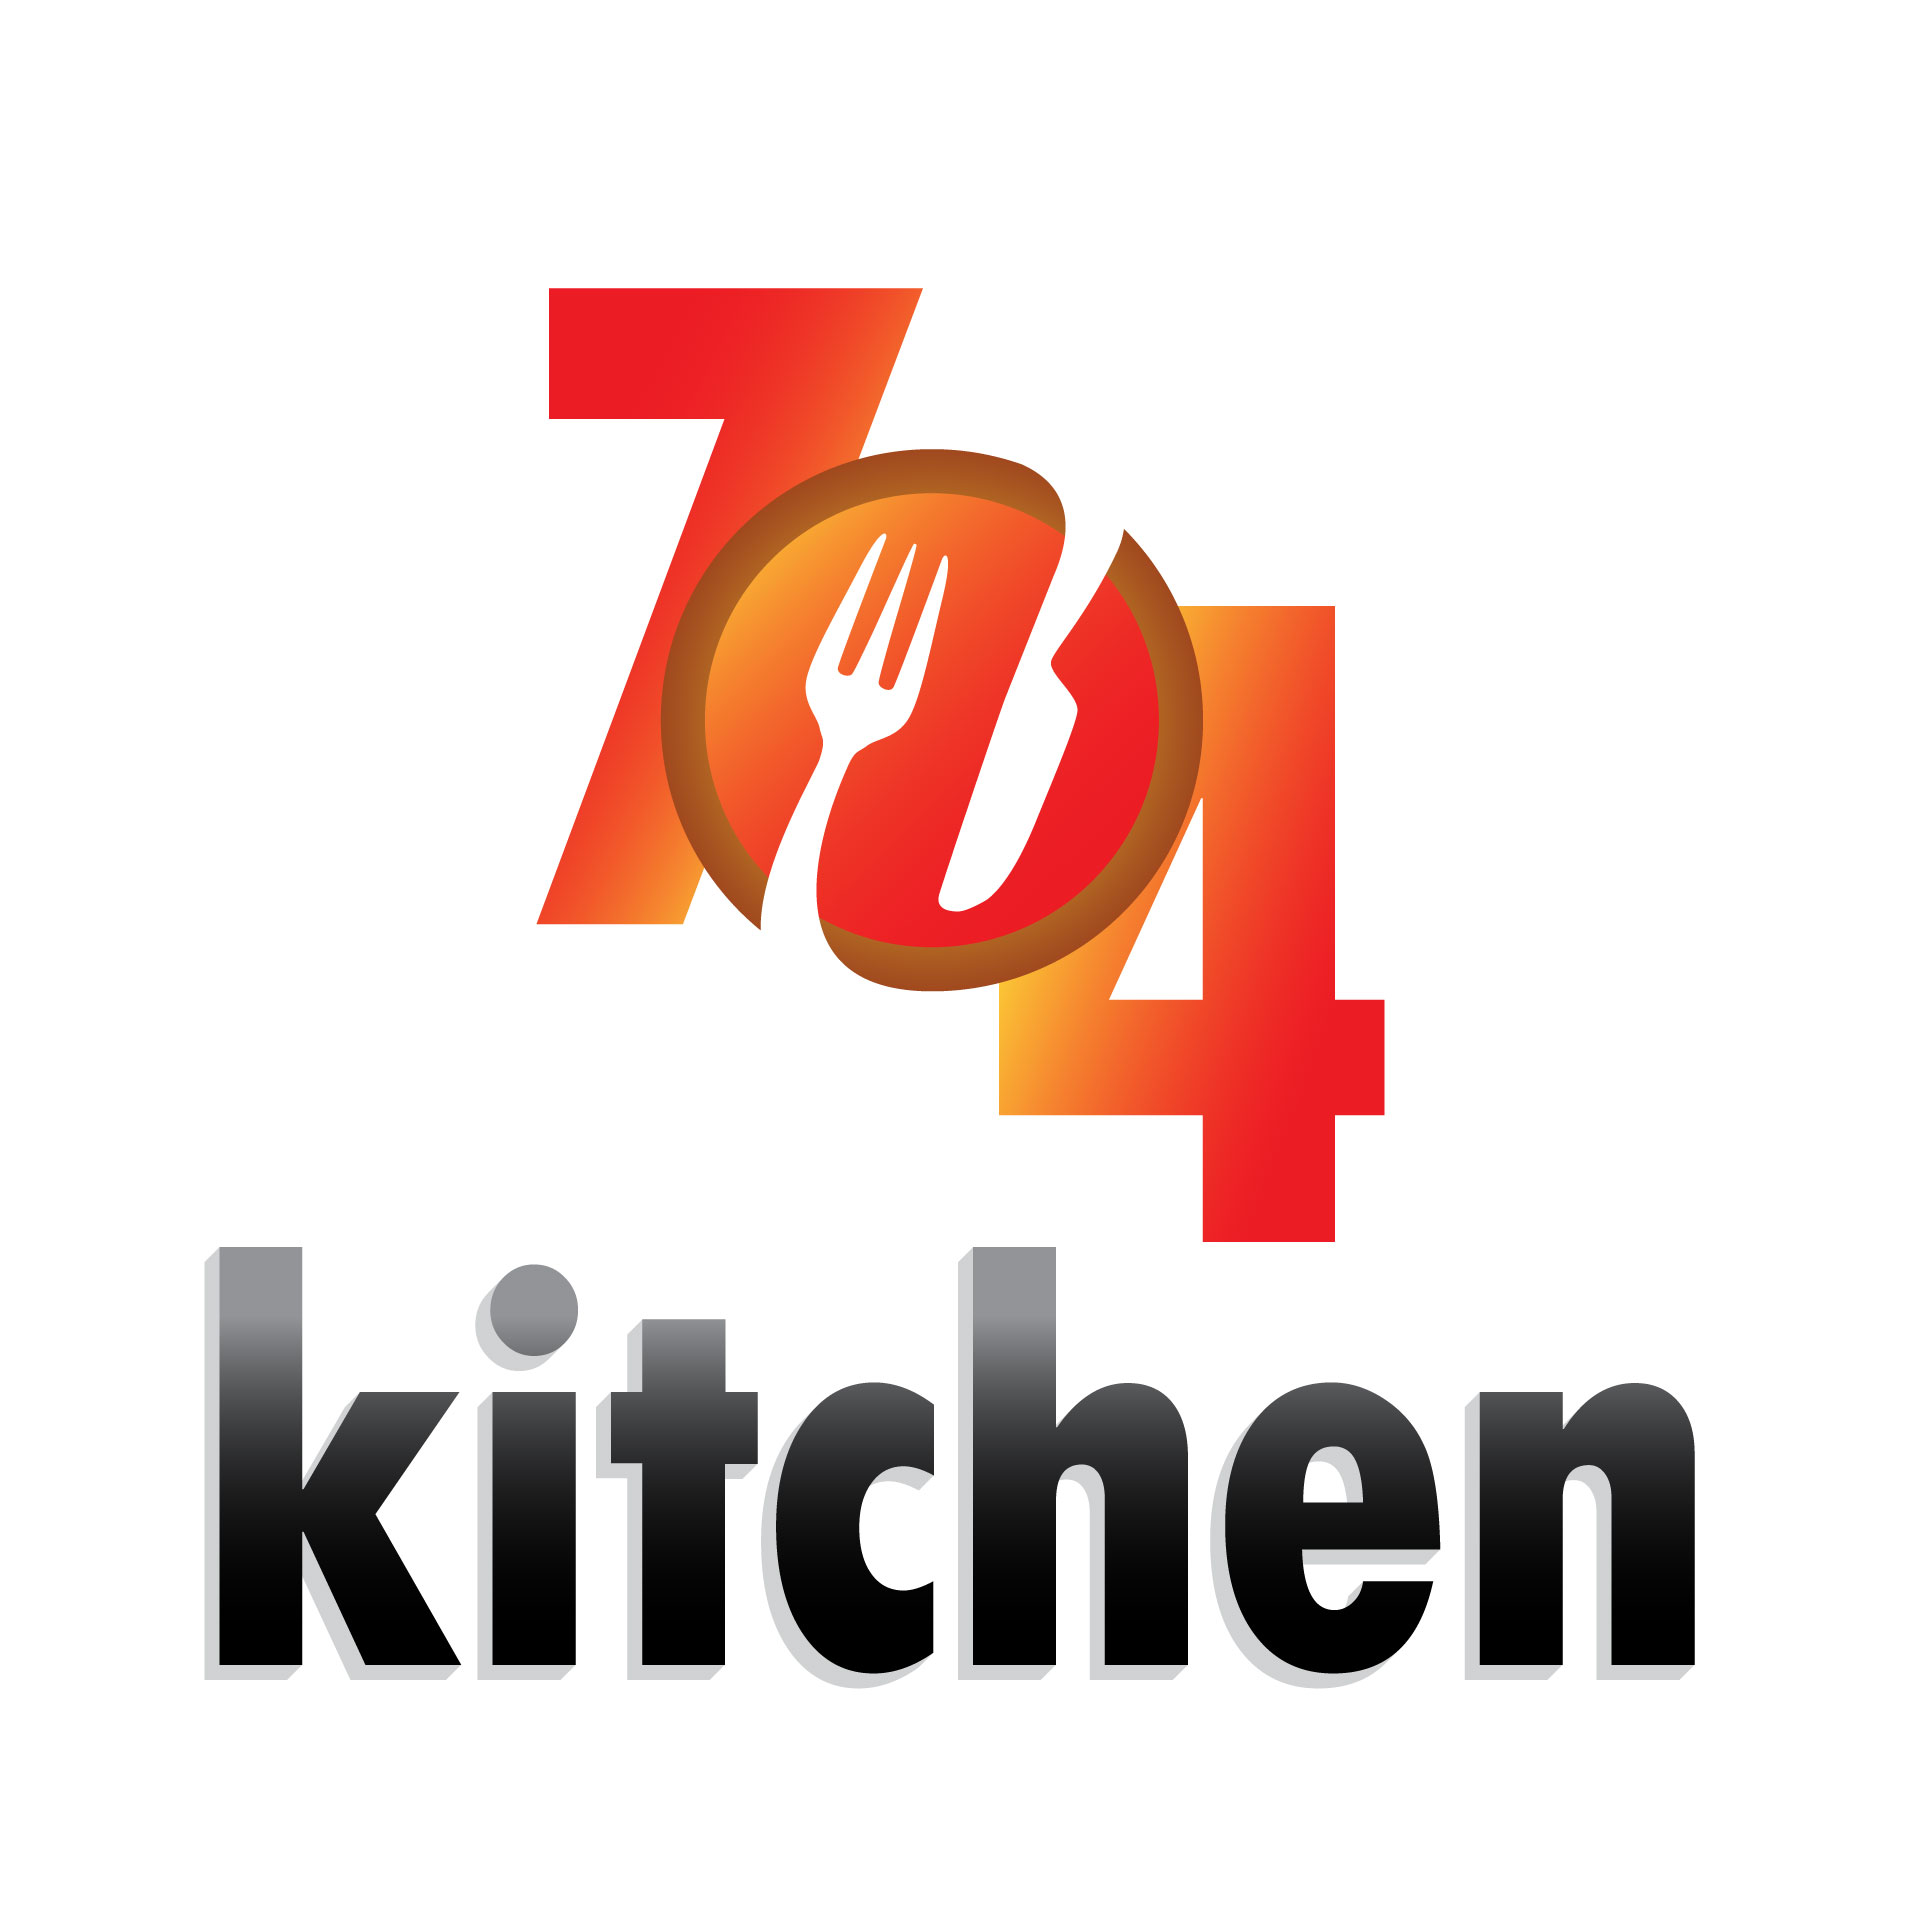 704 Kitchen